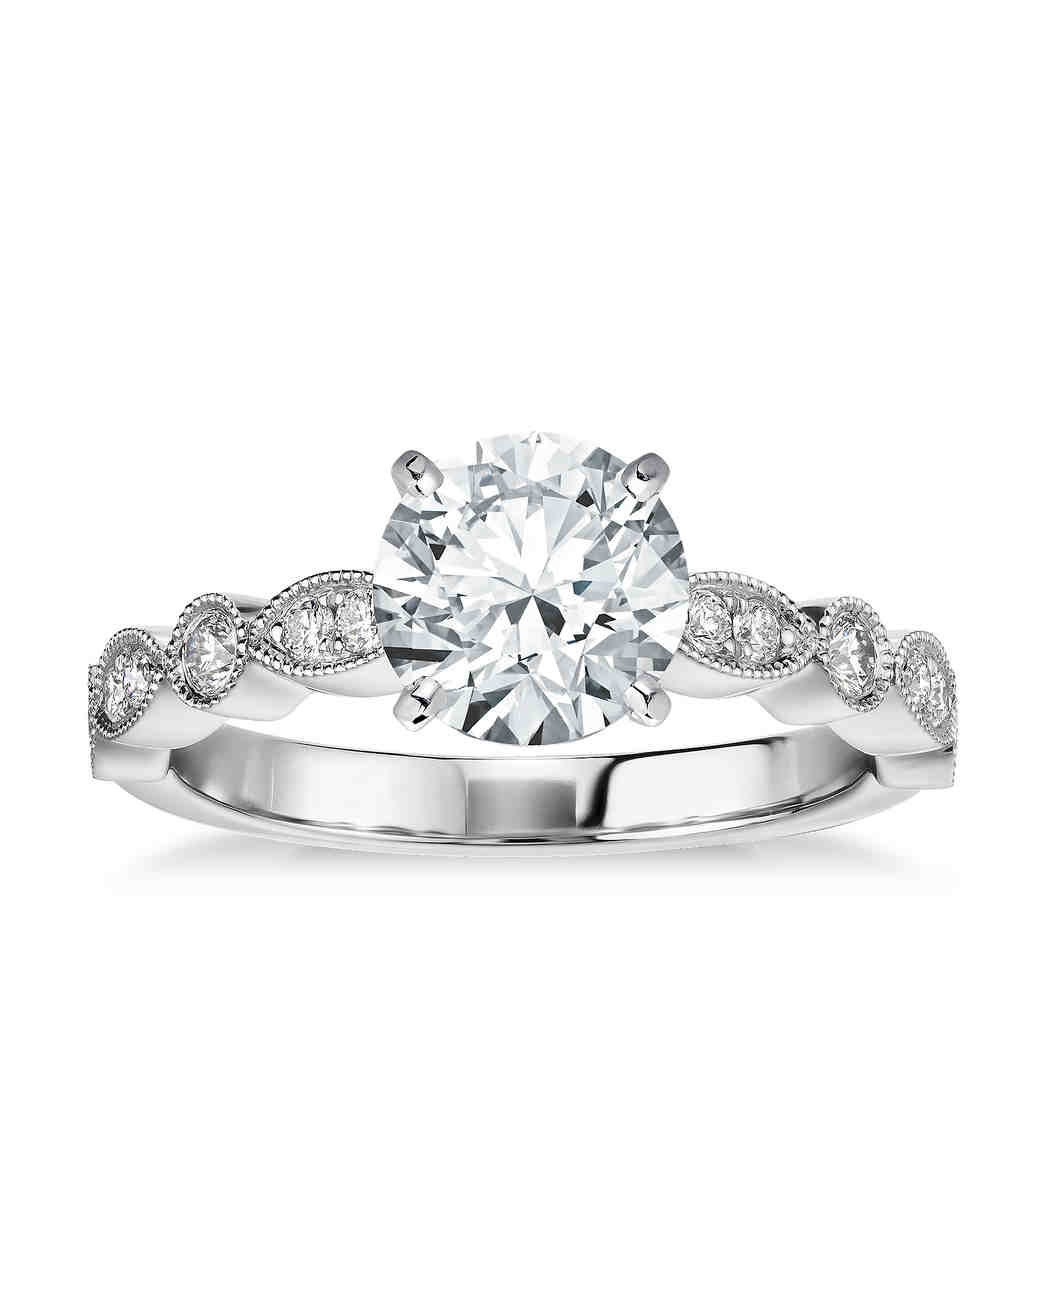 Blue Nile White Gold Engagement Ring